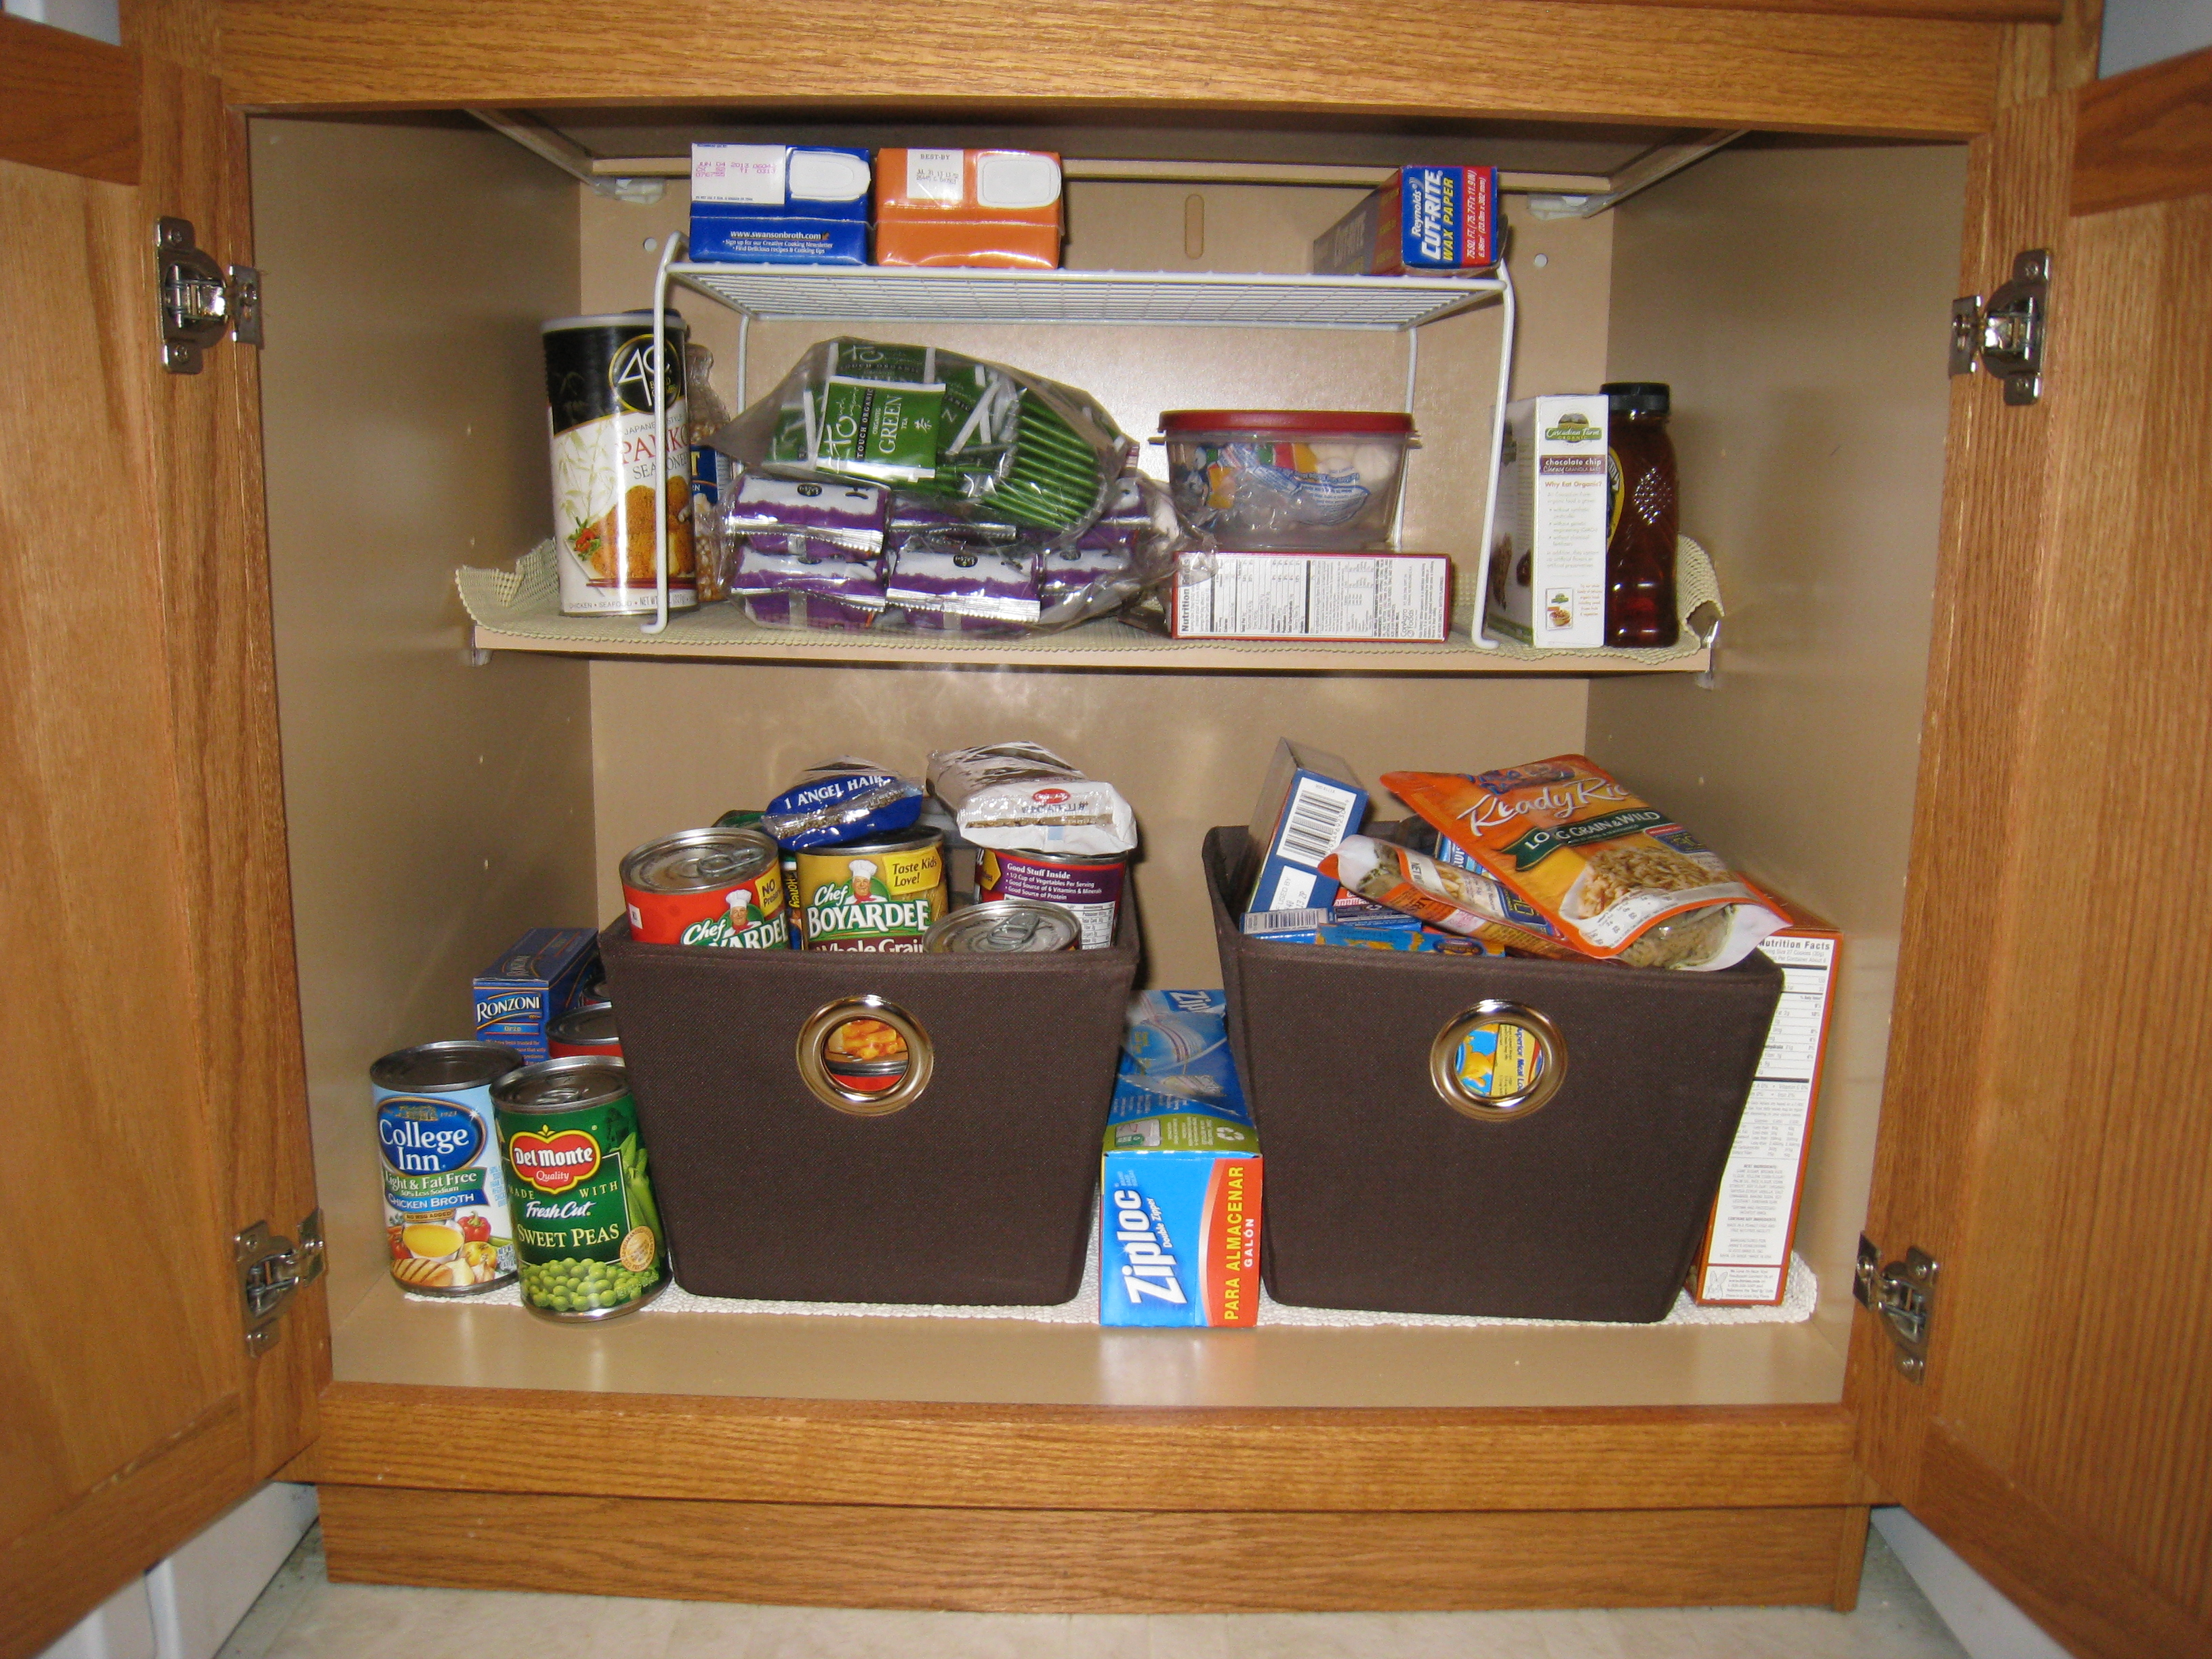 Organization spree the kitchen for Organization ideas for kitchen pantry